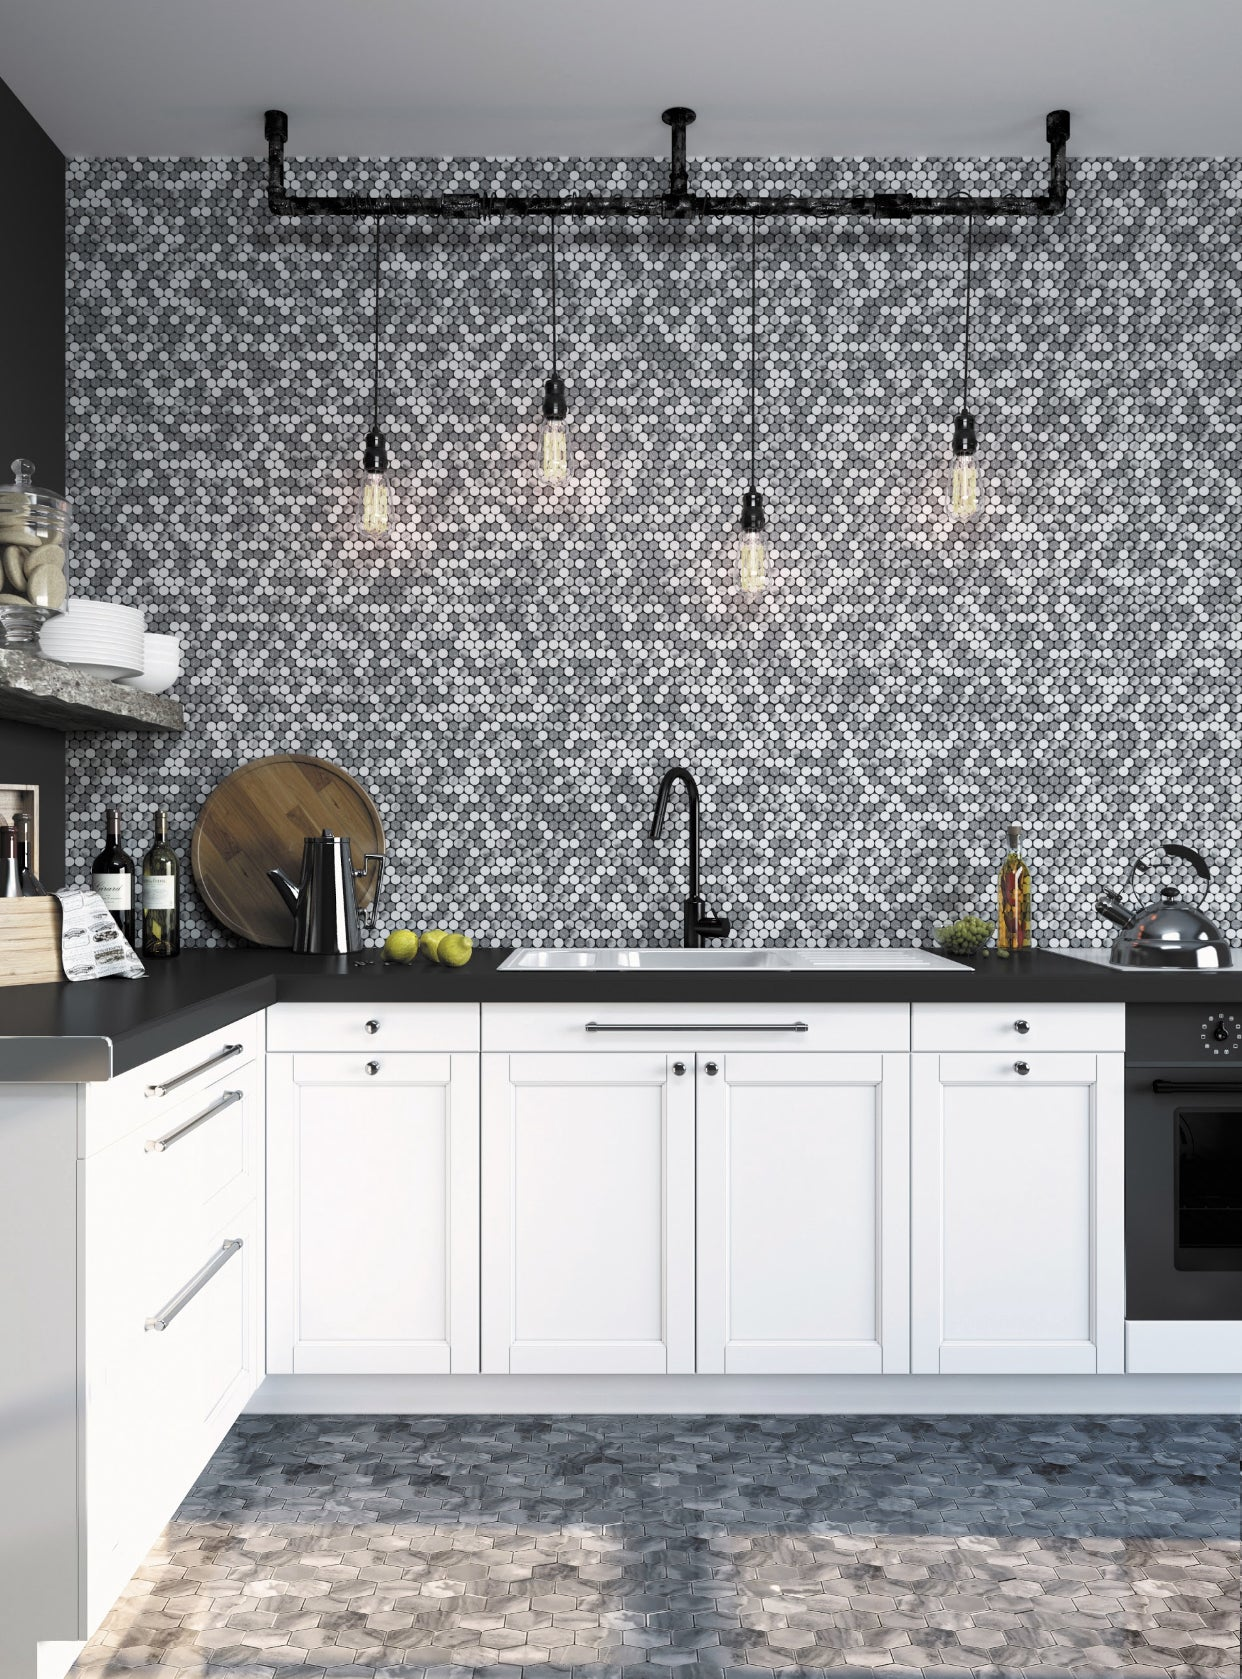 Who doesn't love a penny round tile backsplash? This Bardiglio & Carrara Penny Rounds Polished Marble Mosaic Tile combines a classic design with a quick kitchen refresh!